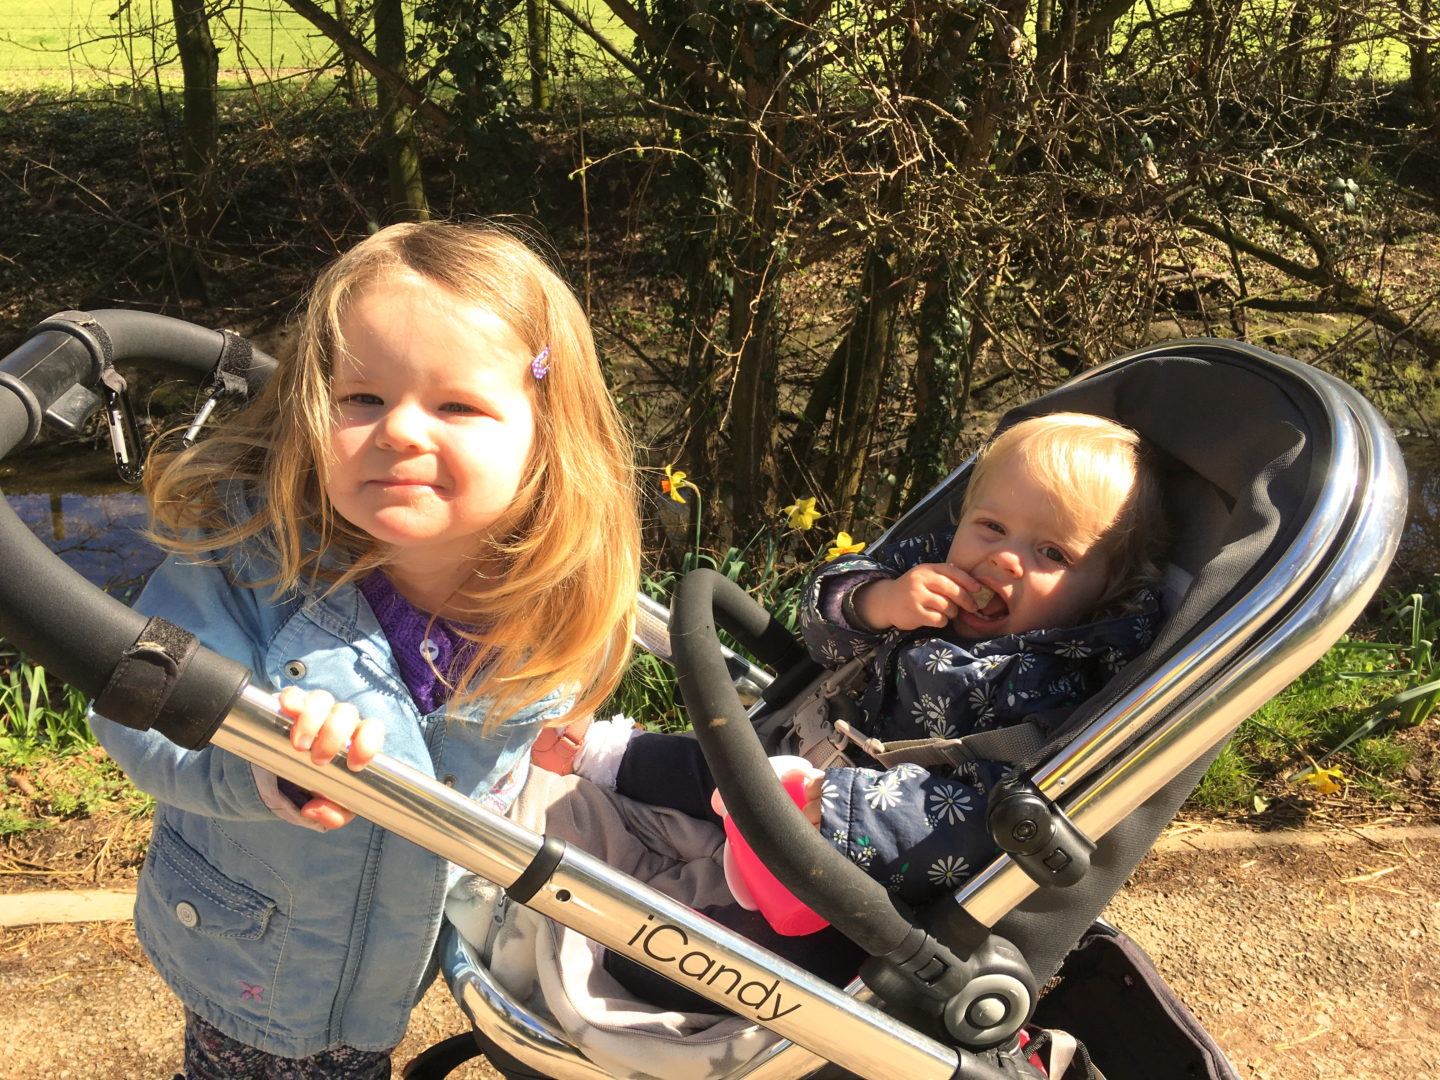 sisters, one sitting in buggy, the other stnading on a buggy board